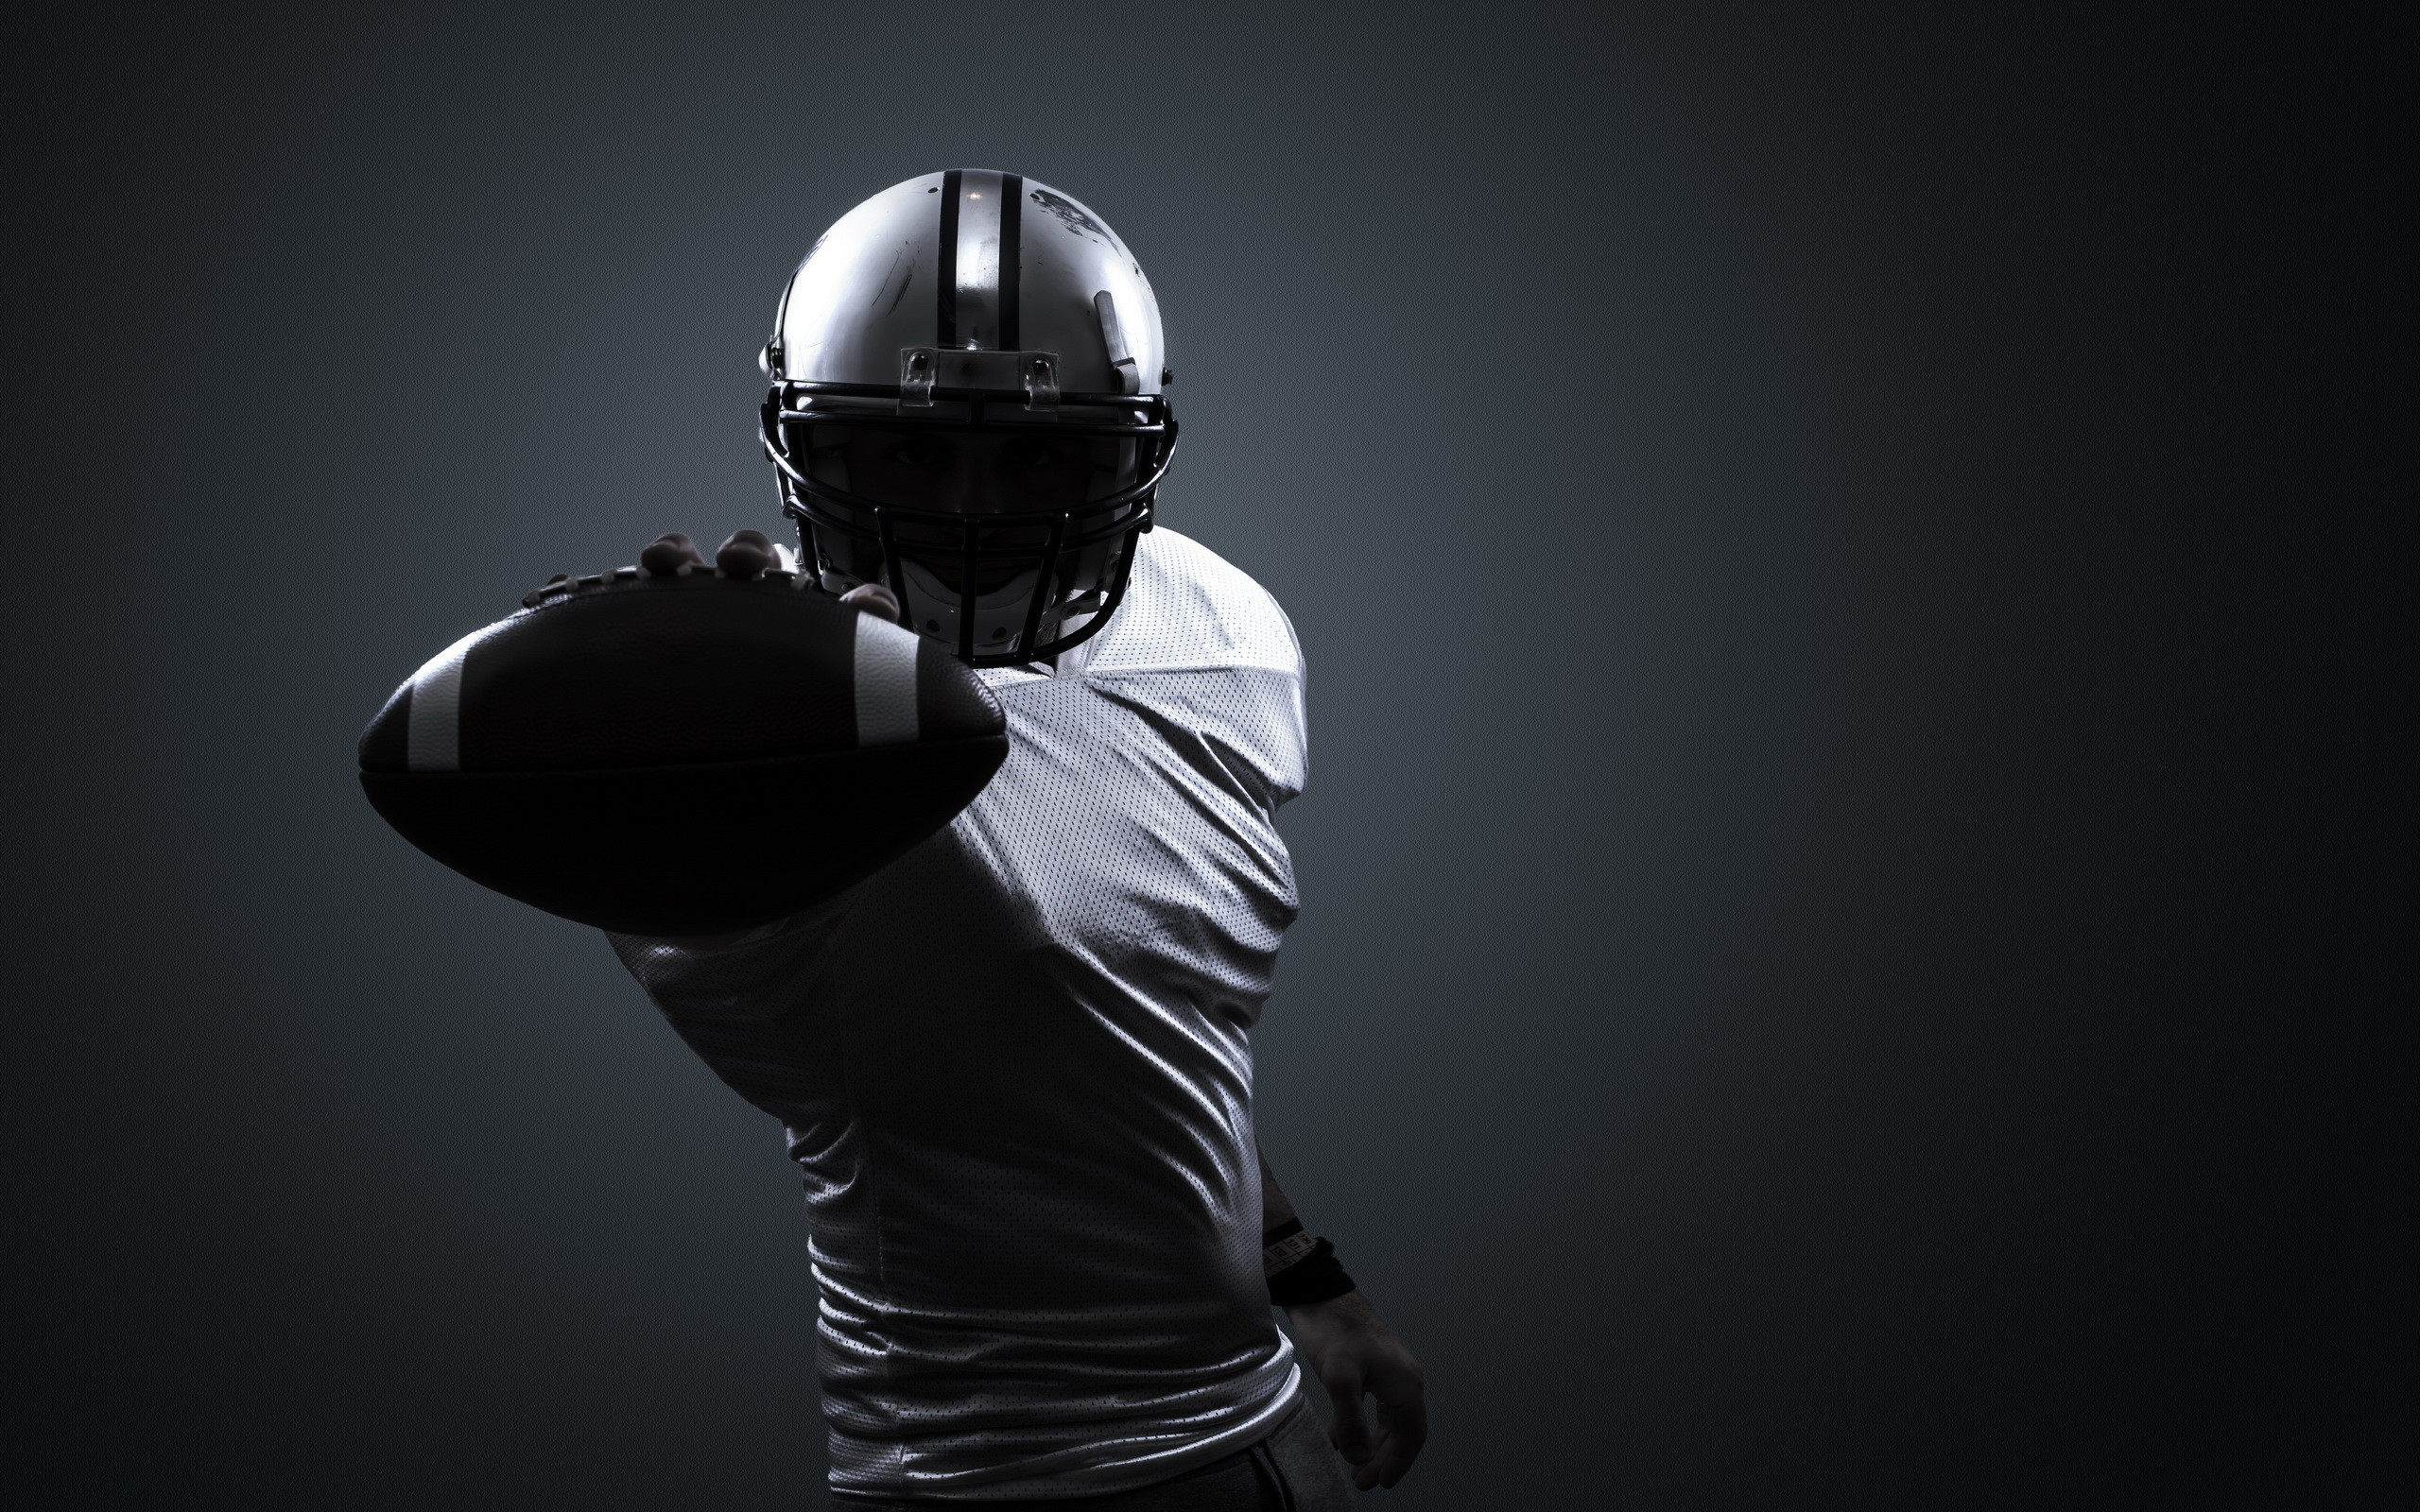 Us Football Background: American Football HD Wallpapers (66+ Images